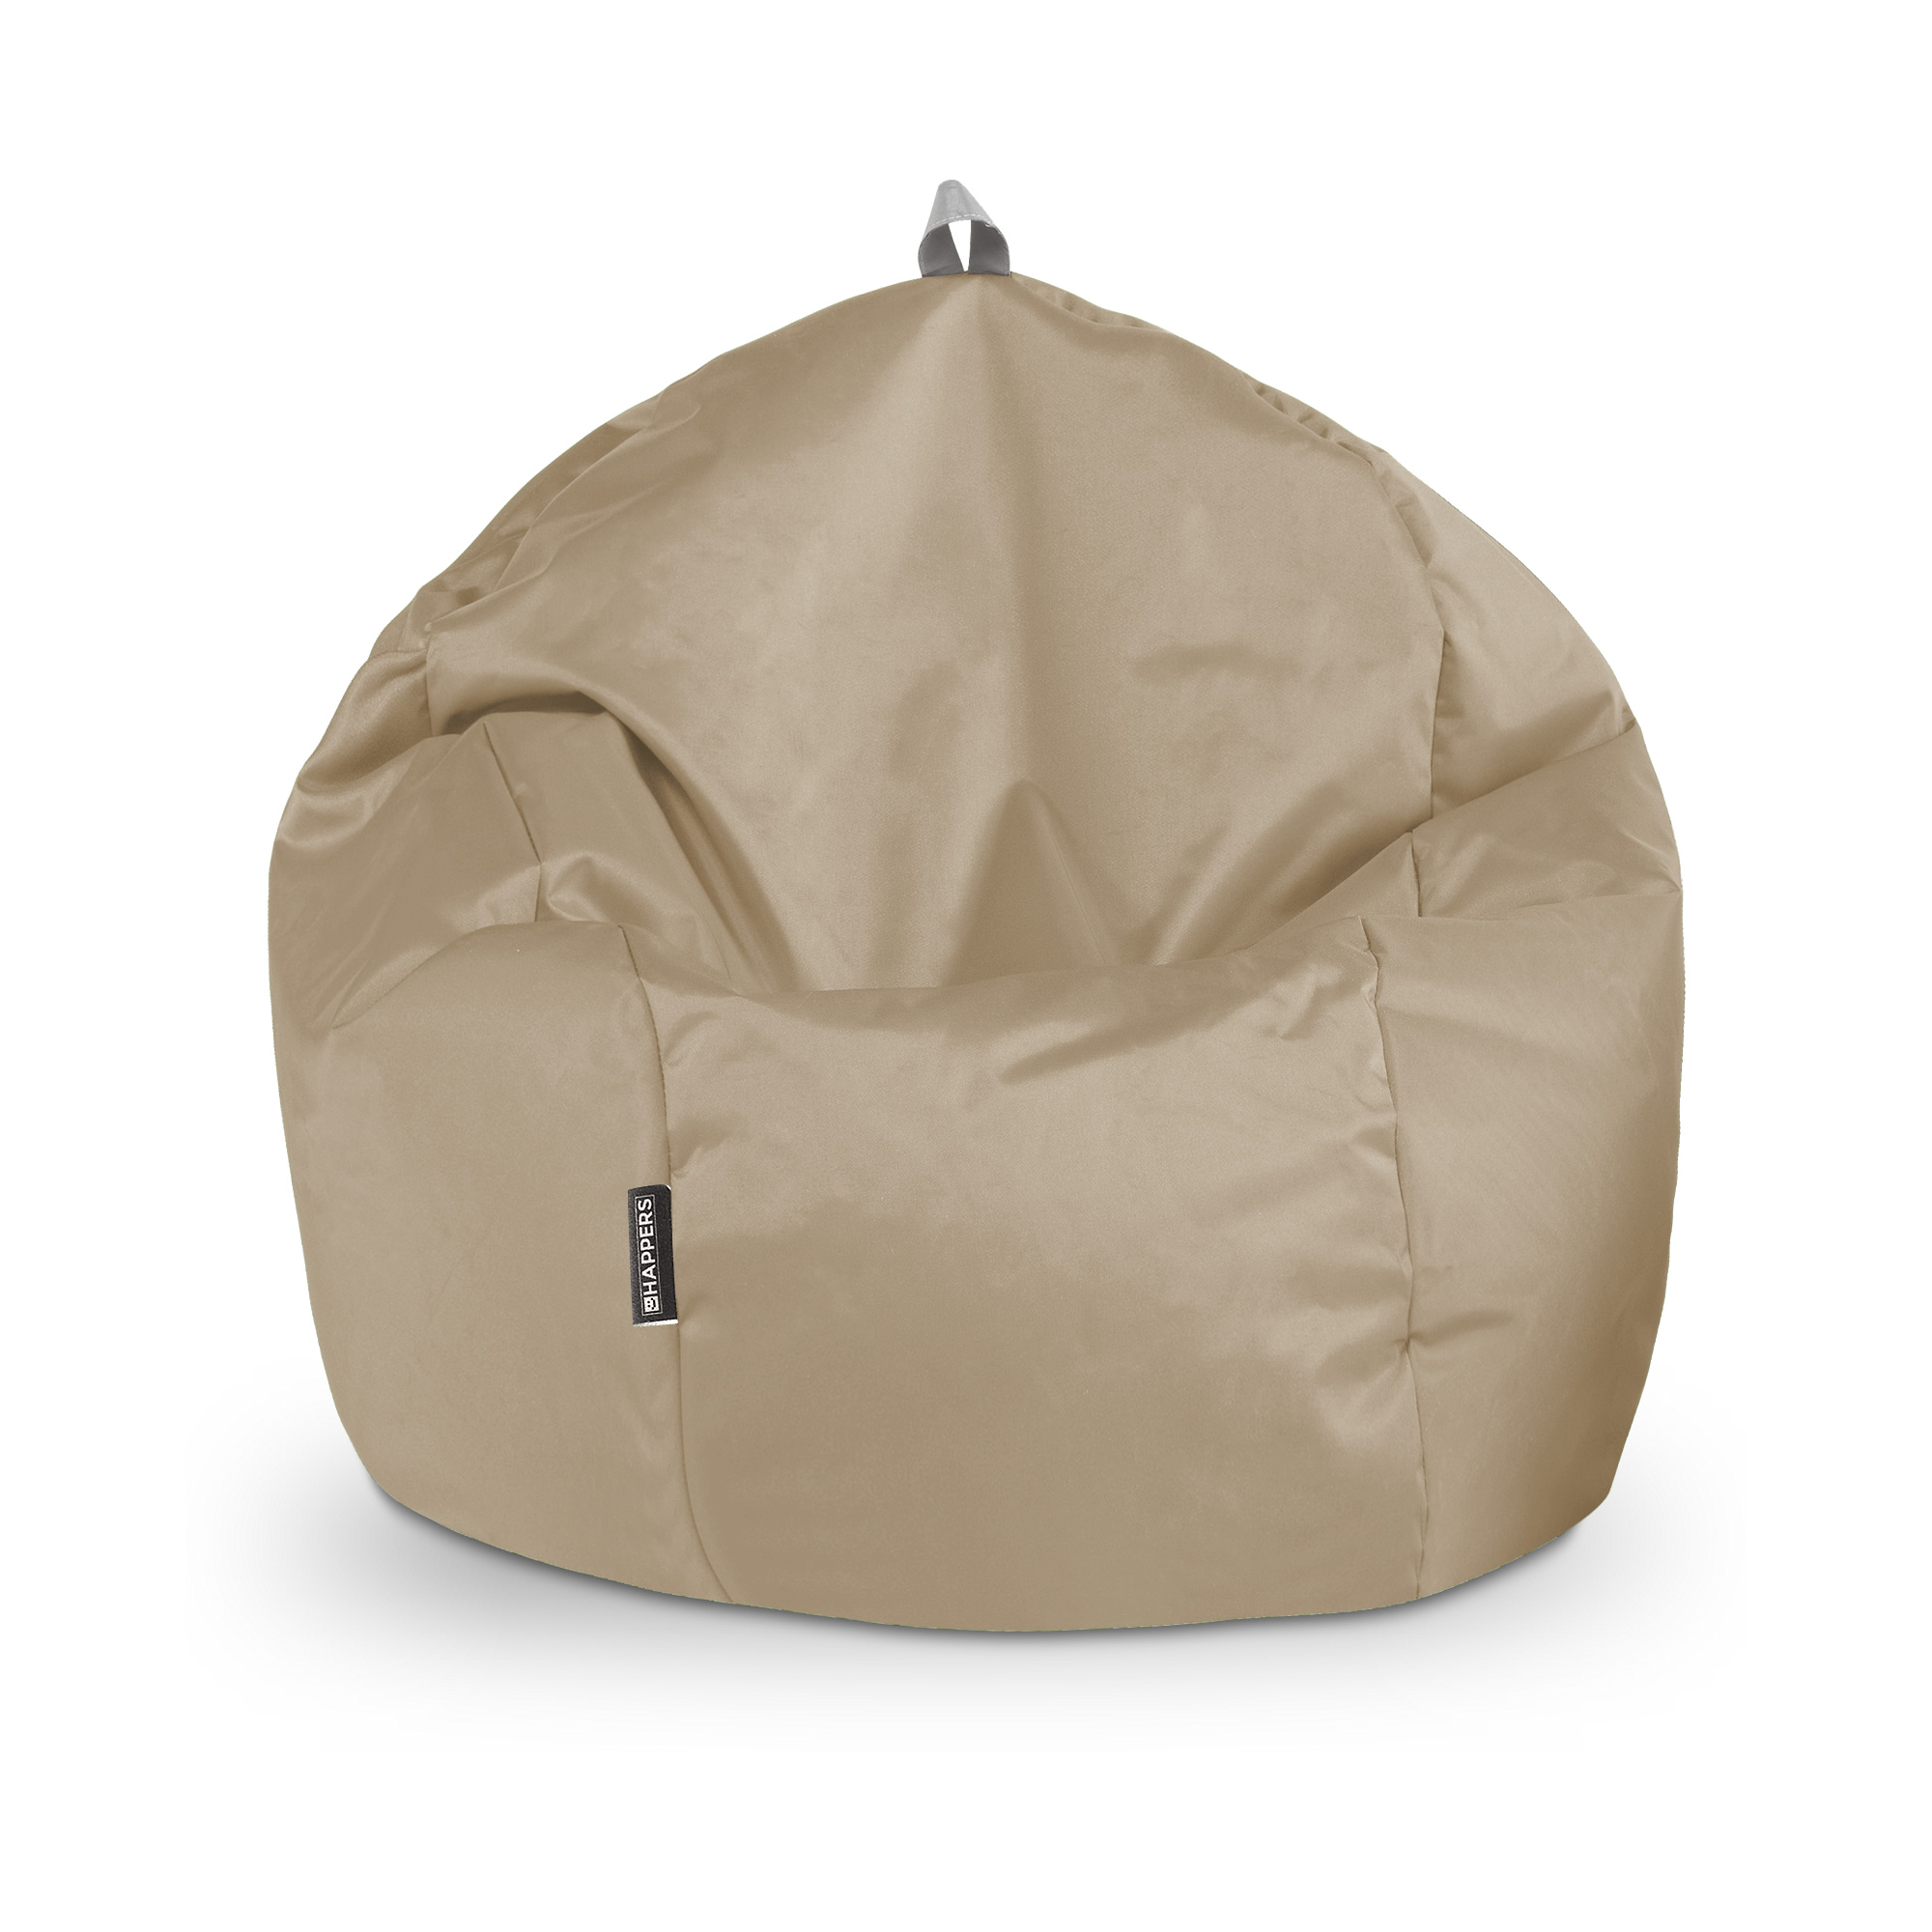 Puff Pelota Naylim Impermeable Arena Happers | Happers.es